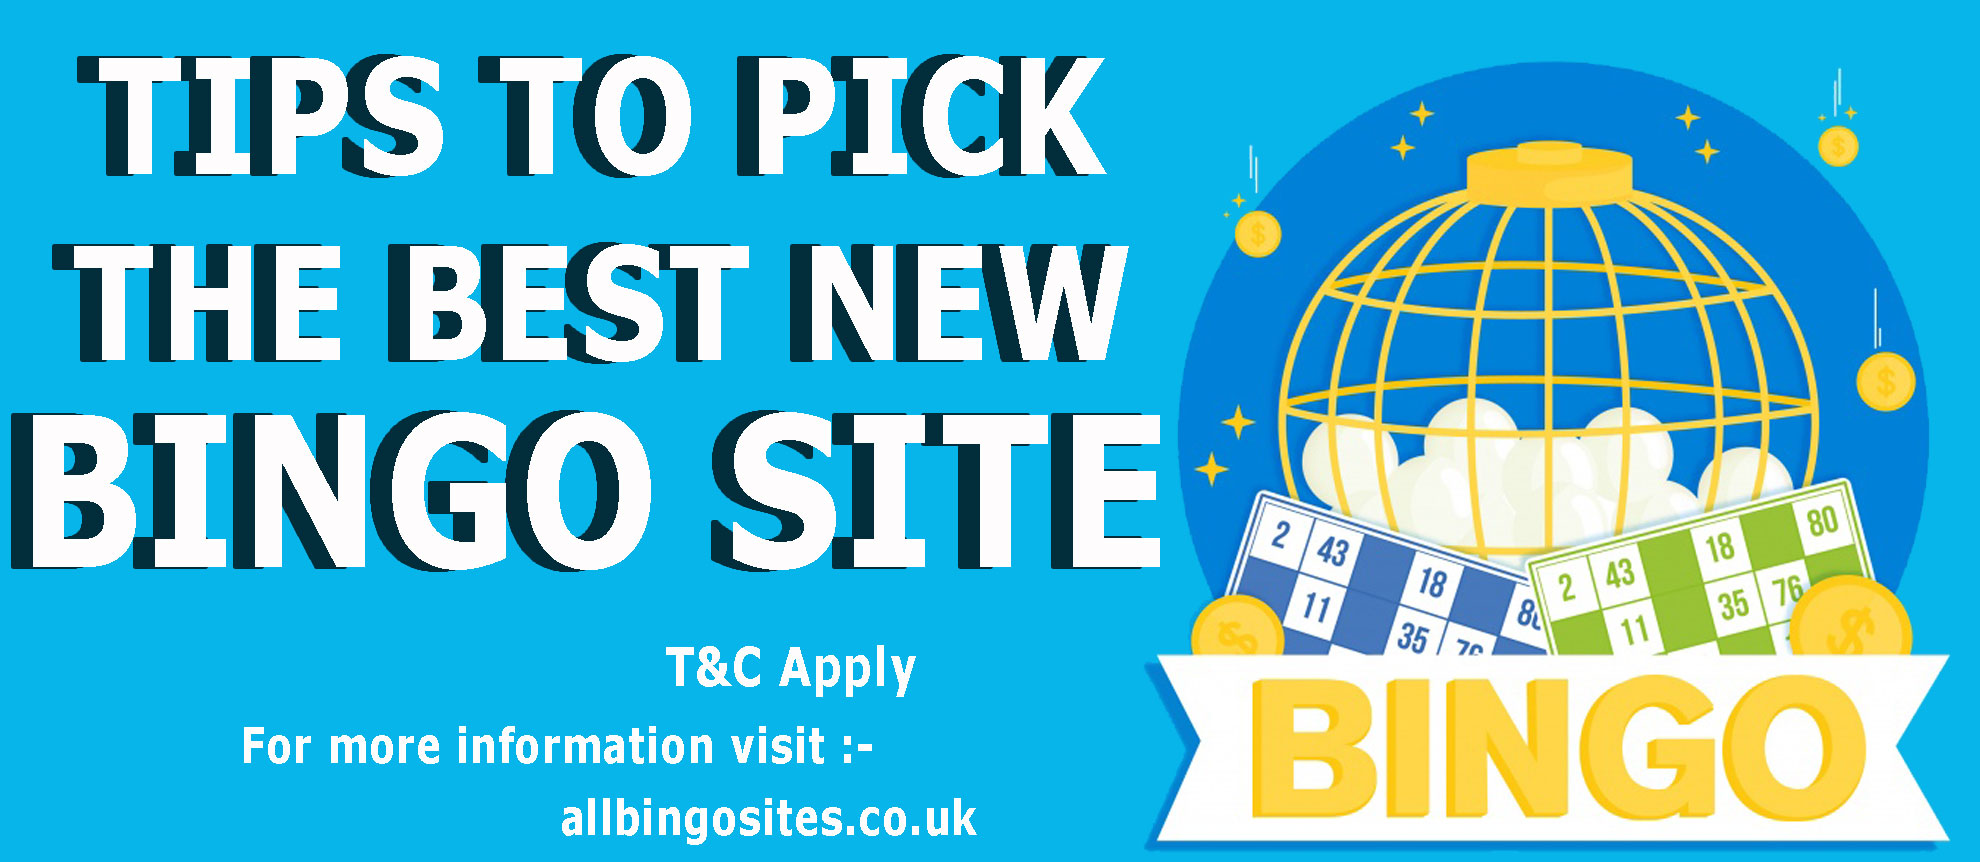 Tips to Pick The Best New Bingo Site